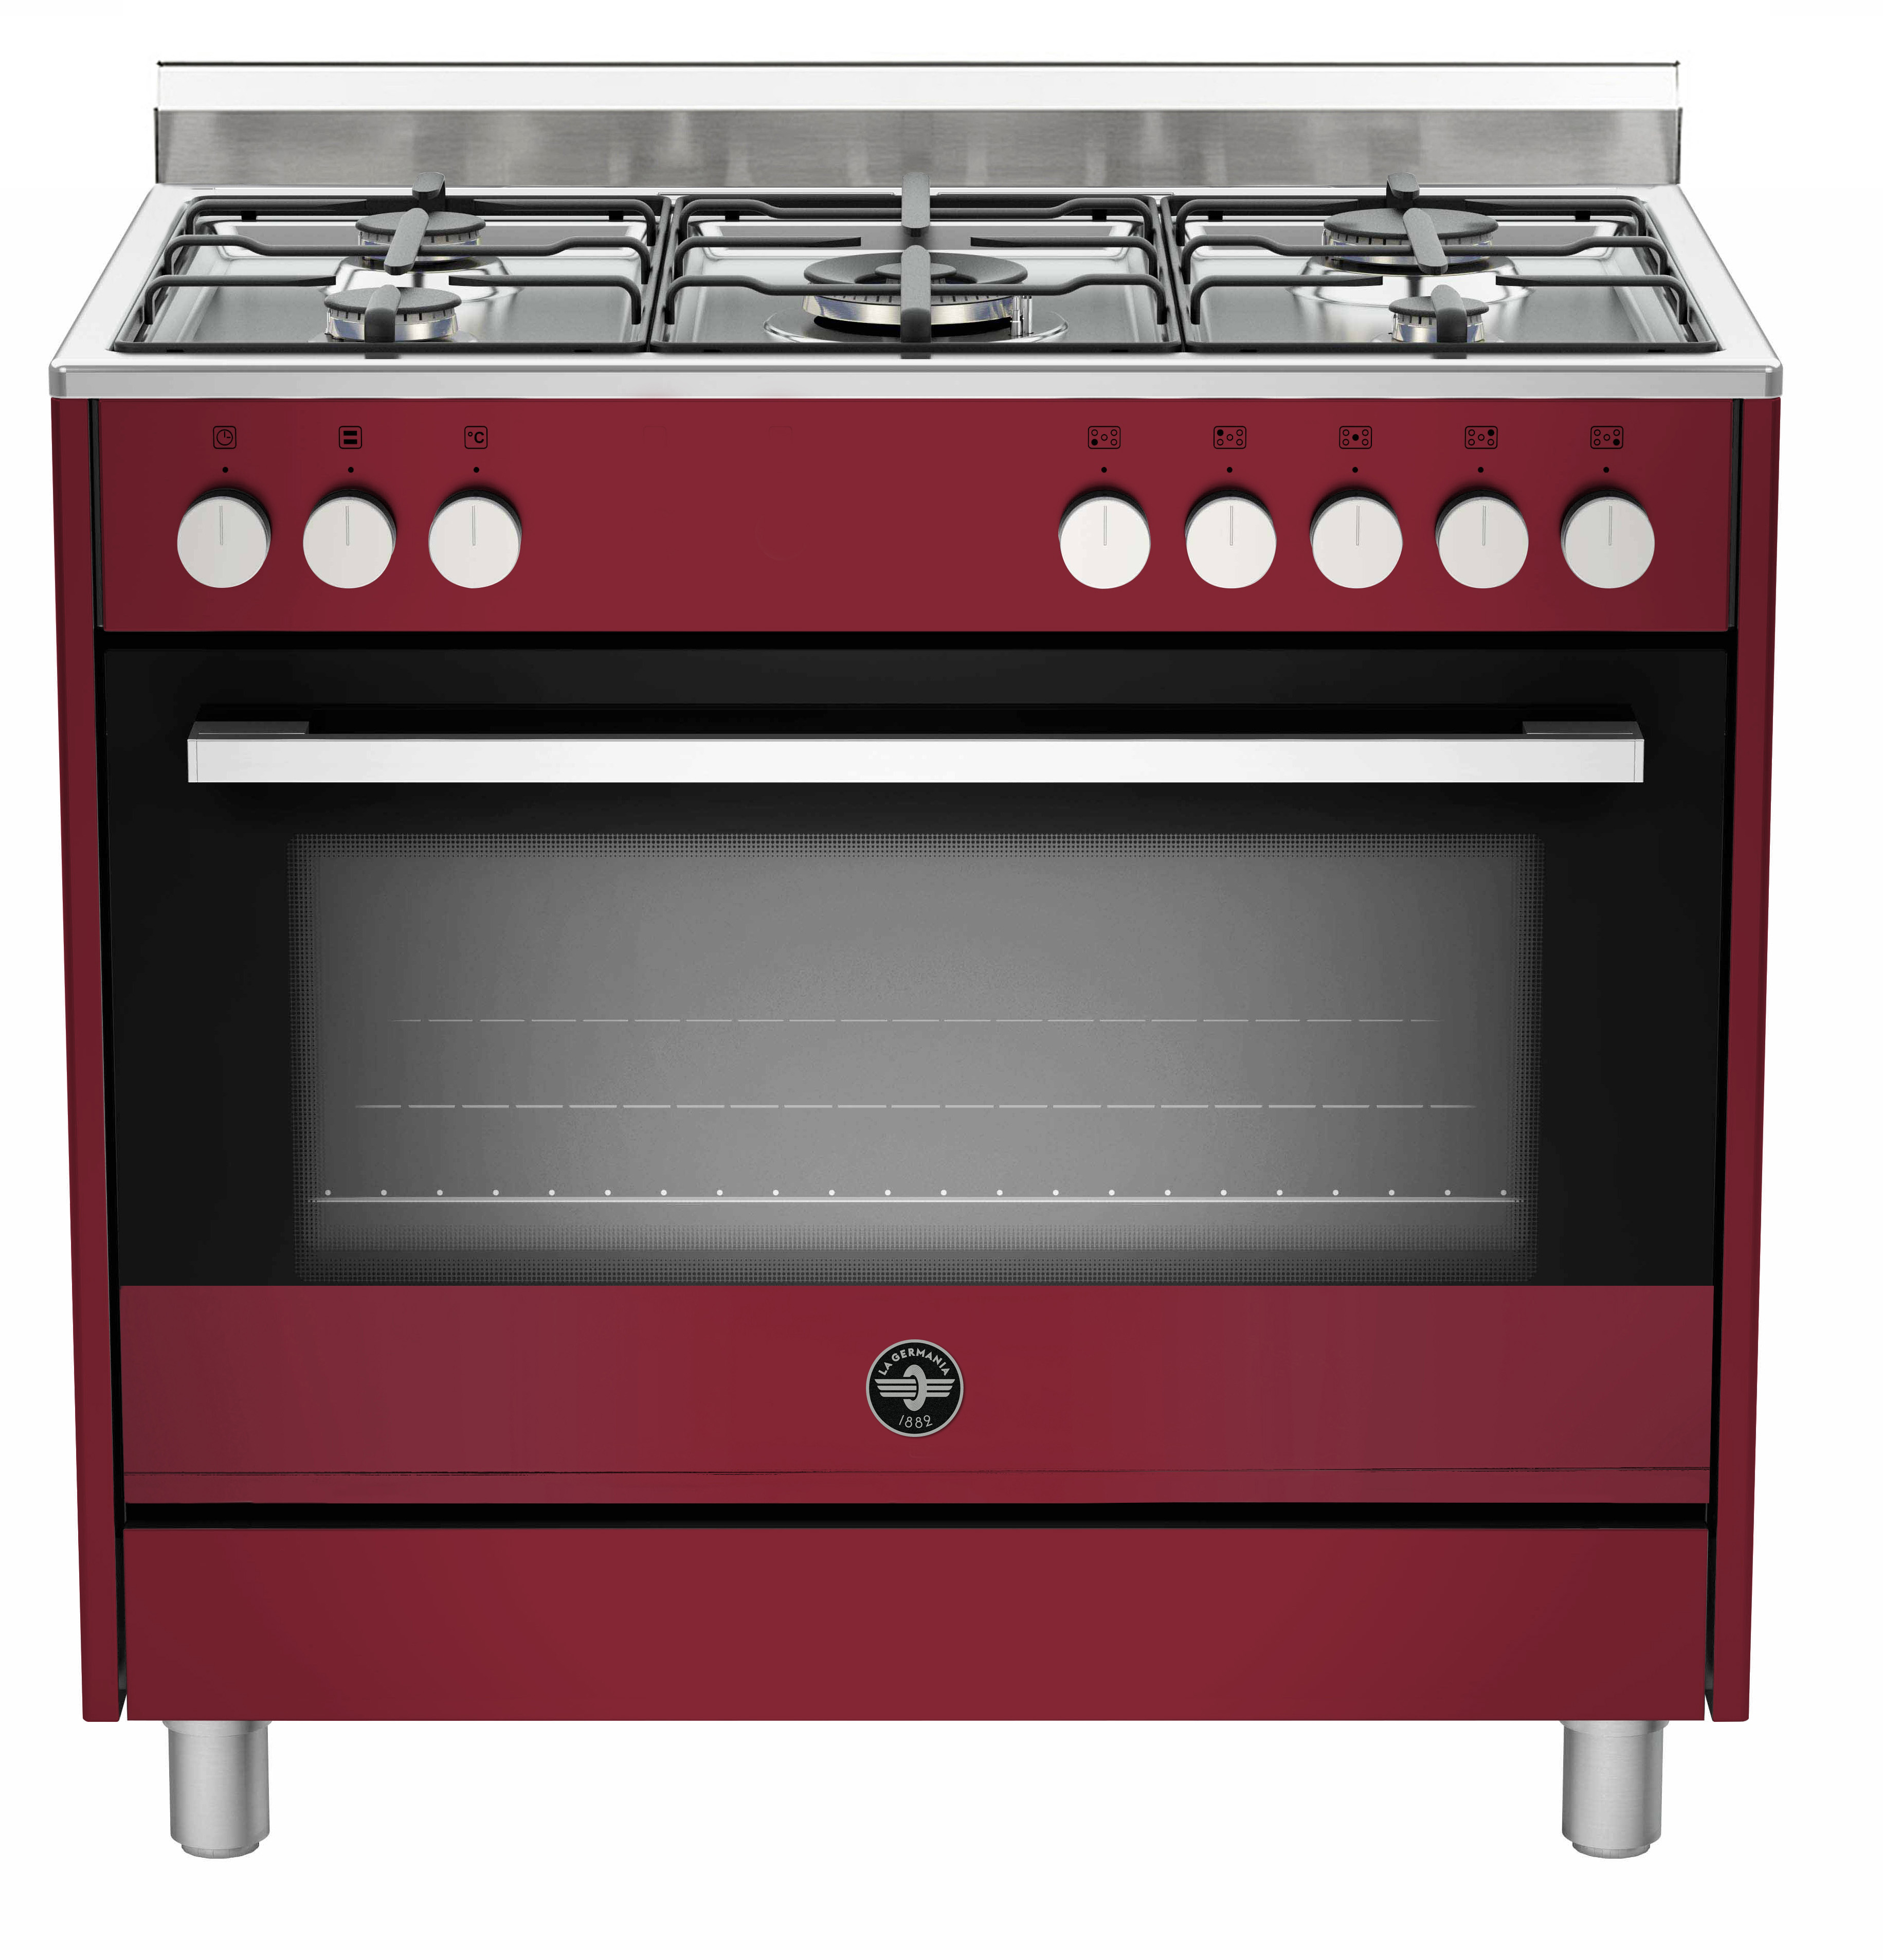 la-germania--europa-90cm-gas-hobelectric-oven-95-61